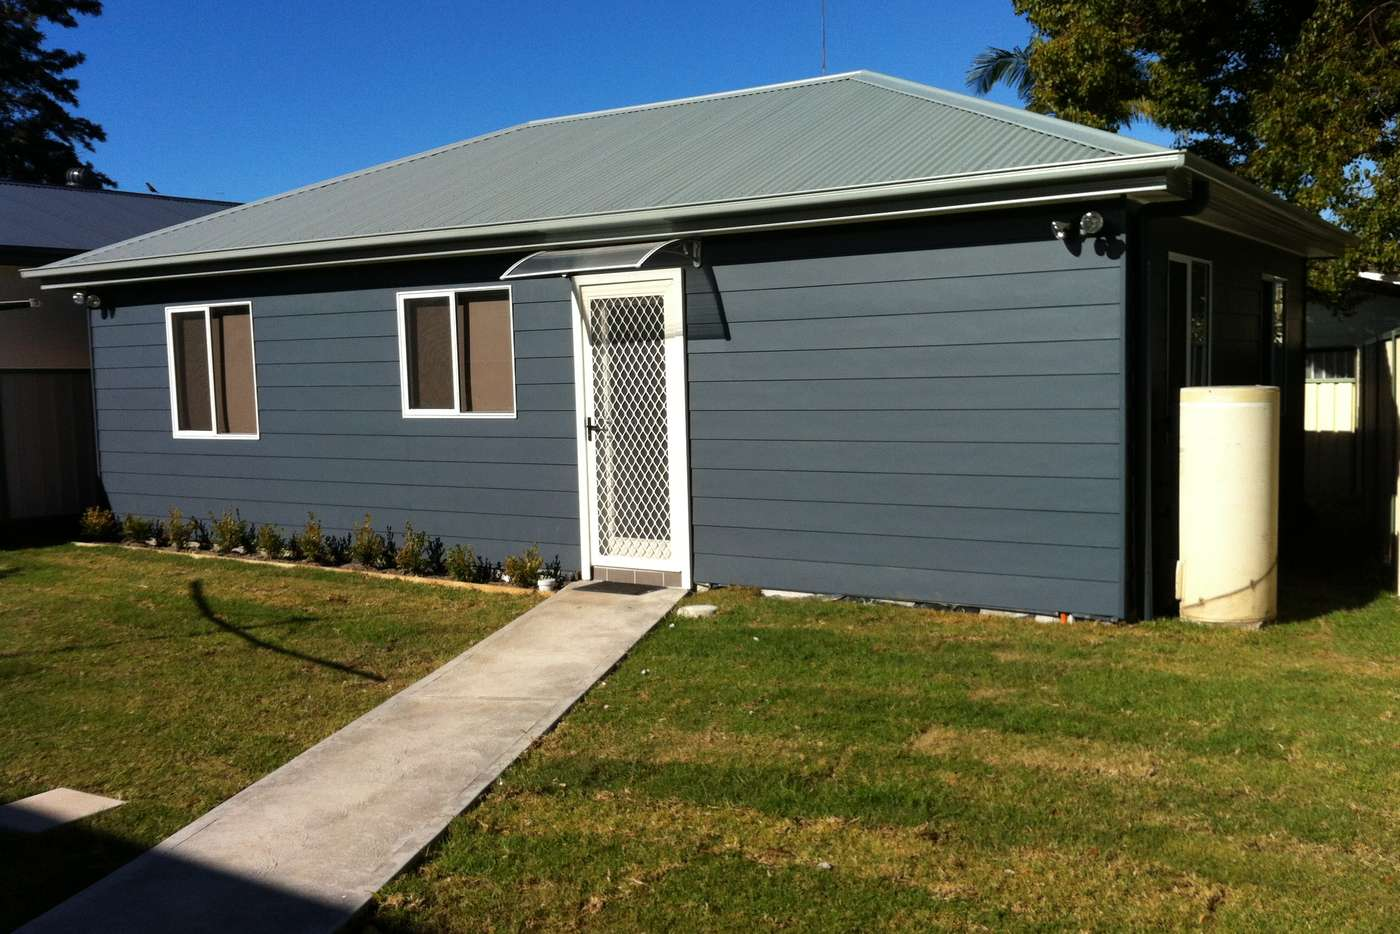 Main view of Homely house listing, 65 Fussell Street (granny flat), Birmingham Gardens NSW 2287